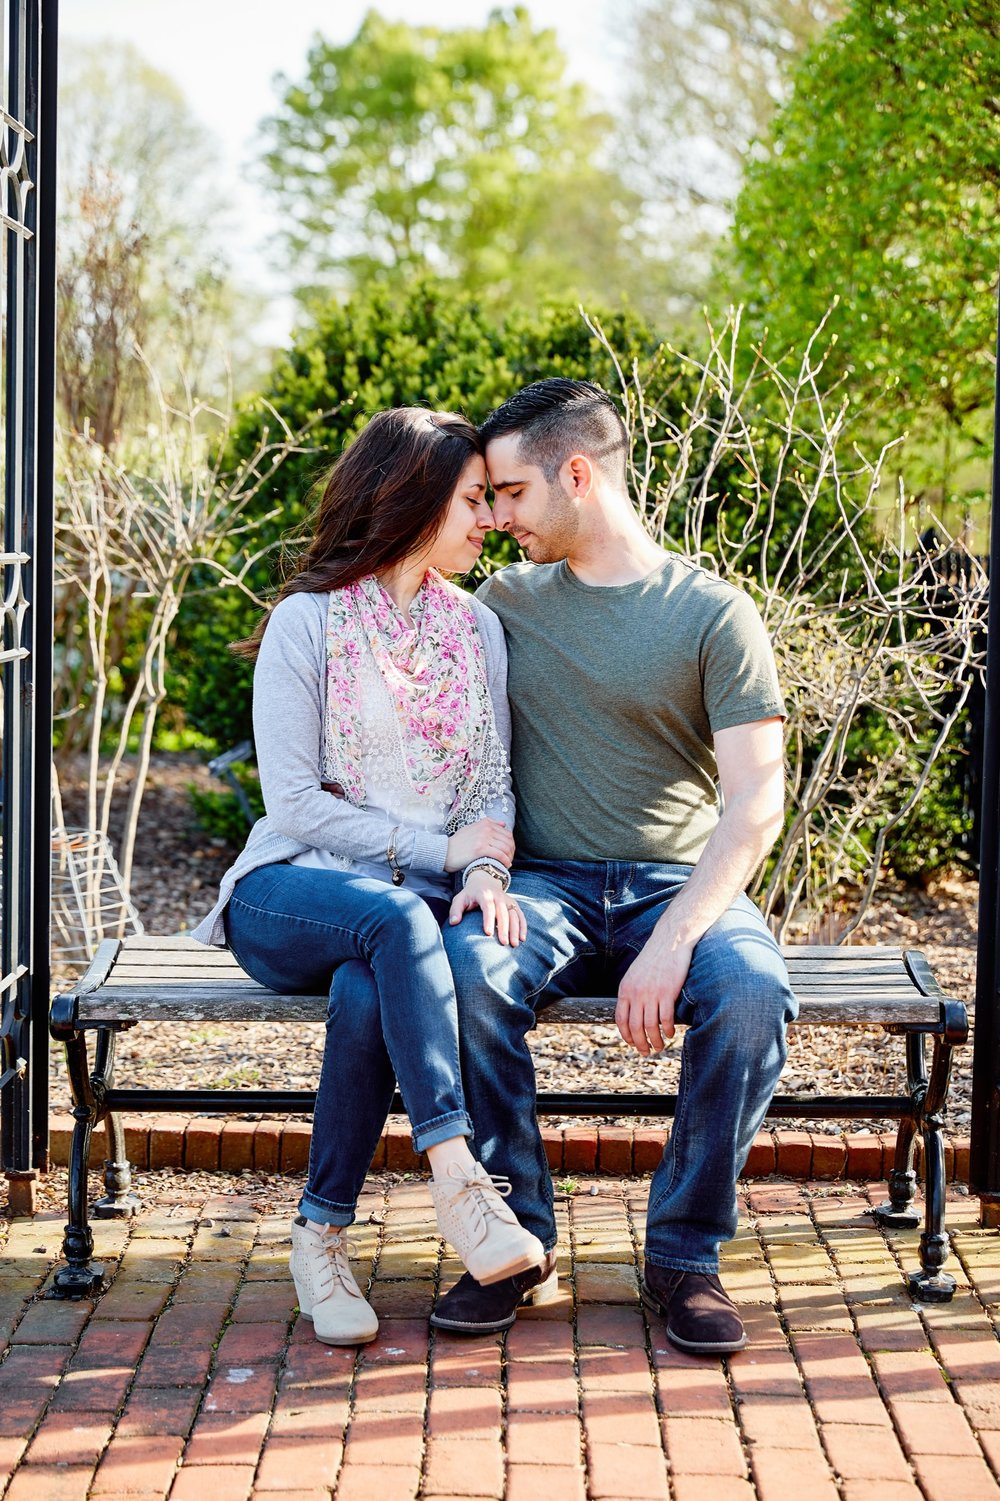 MOBOT Missouri Botanical Gardens and Washington University Wash U Engagement Session Photographs by St Louis Wedding Photographers Oldani Photography